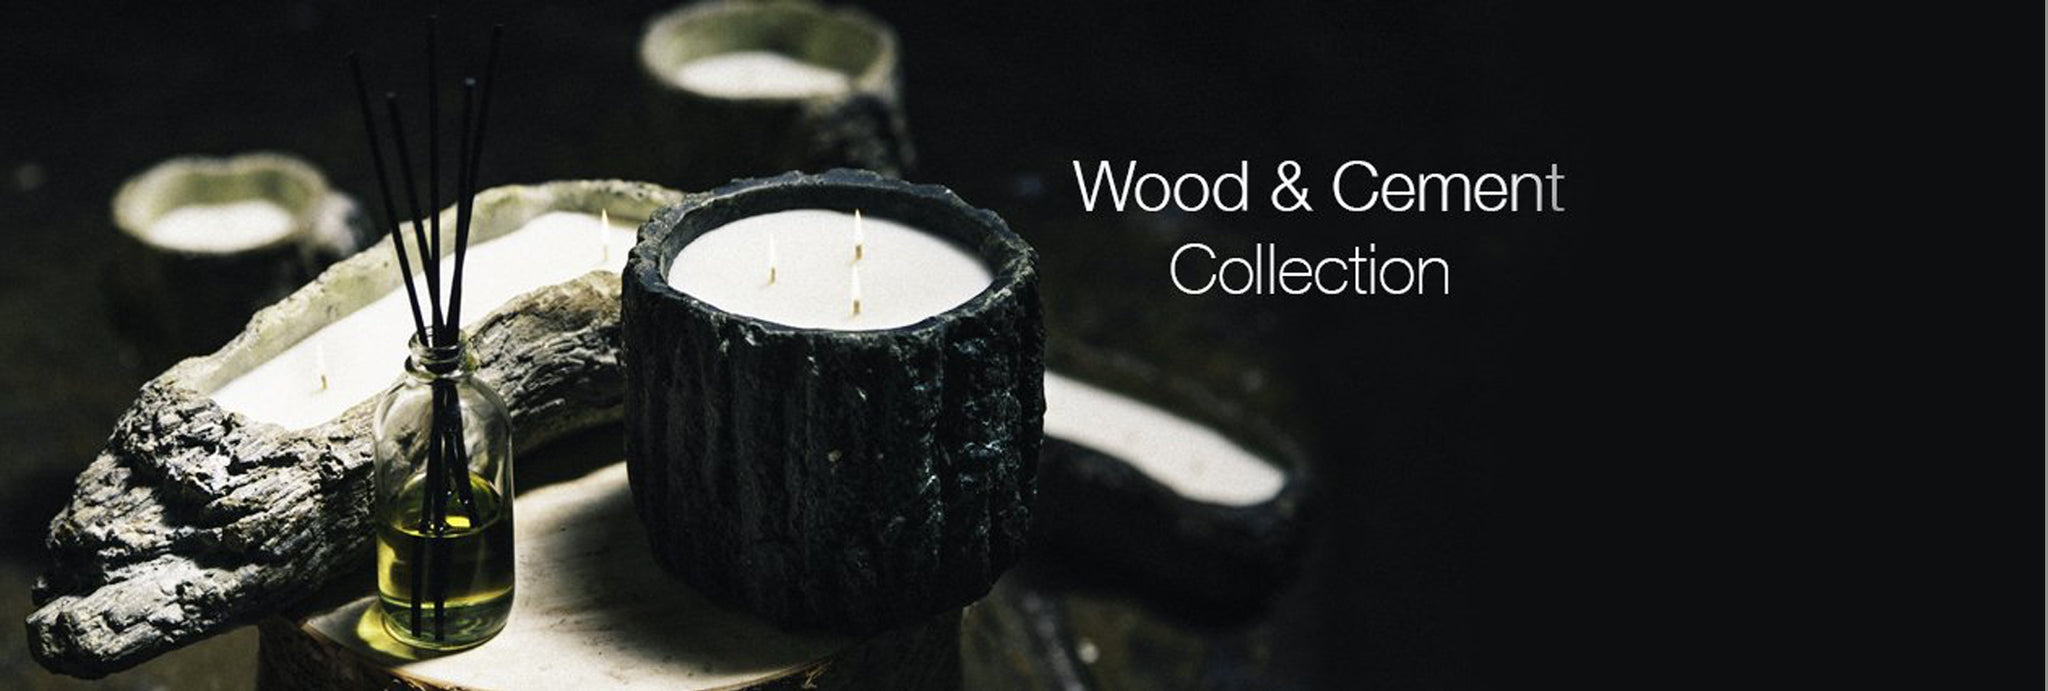 Wood & Cement Collection